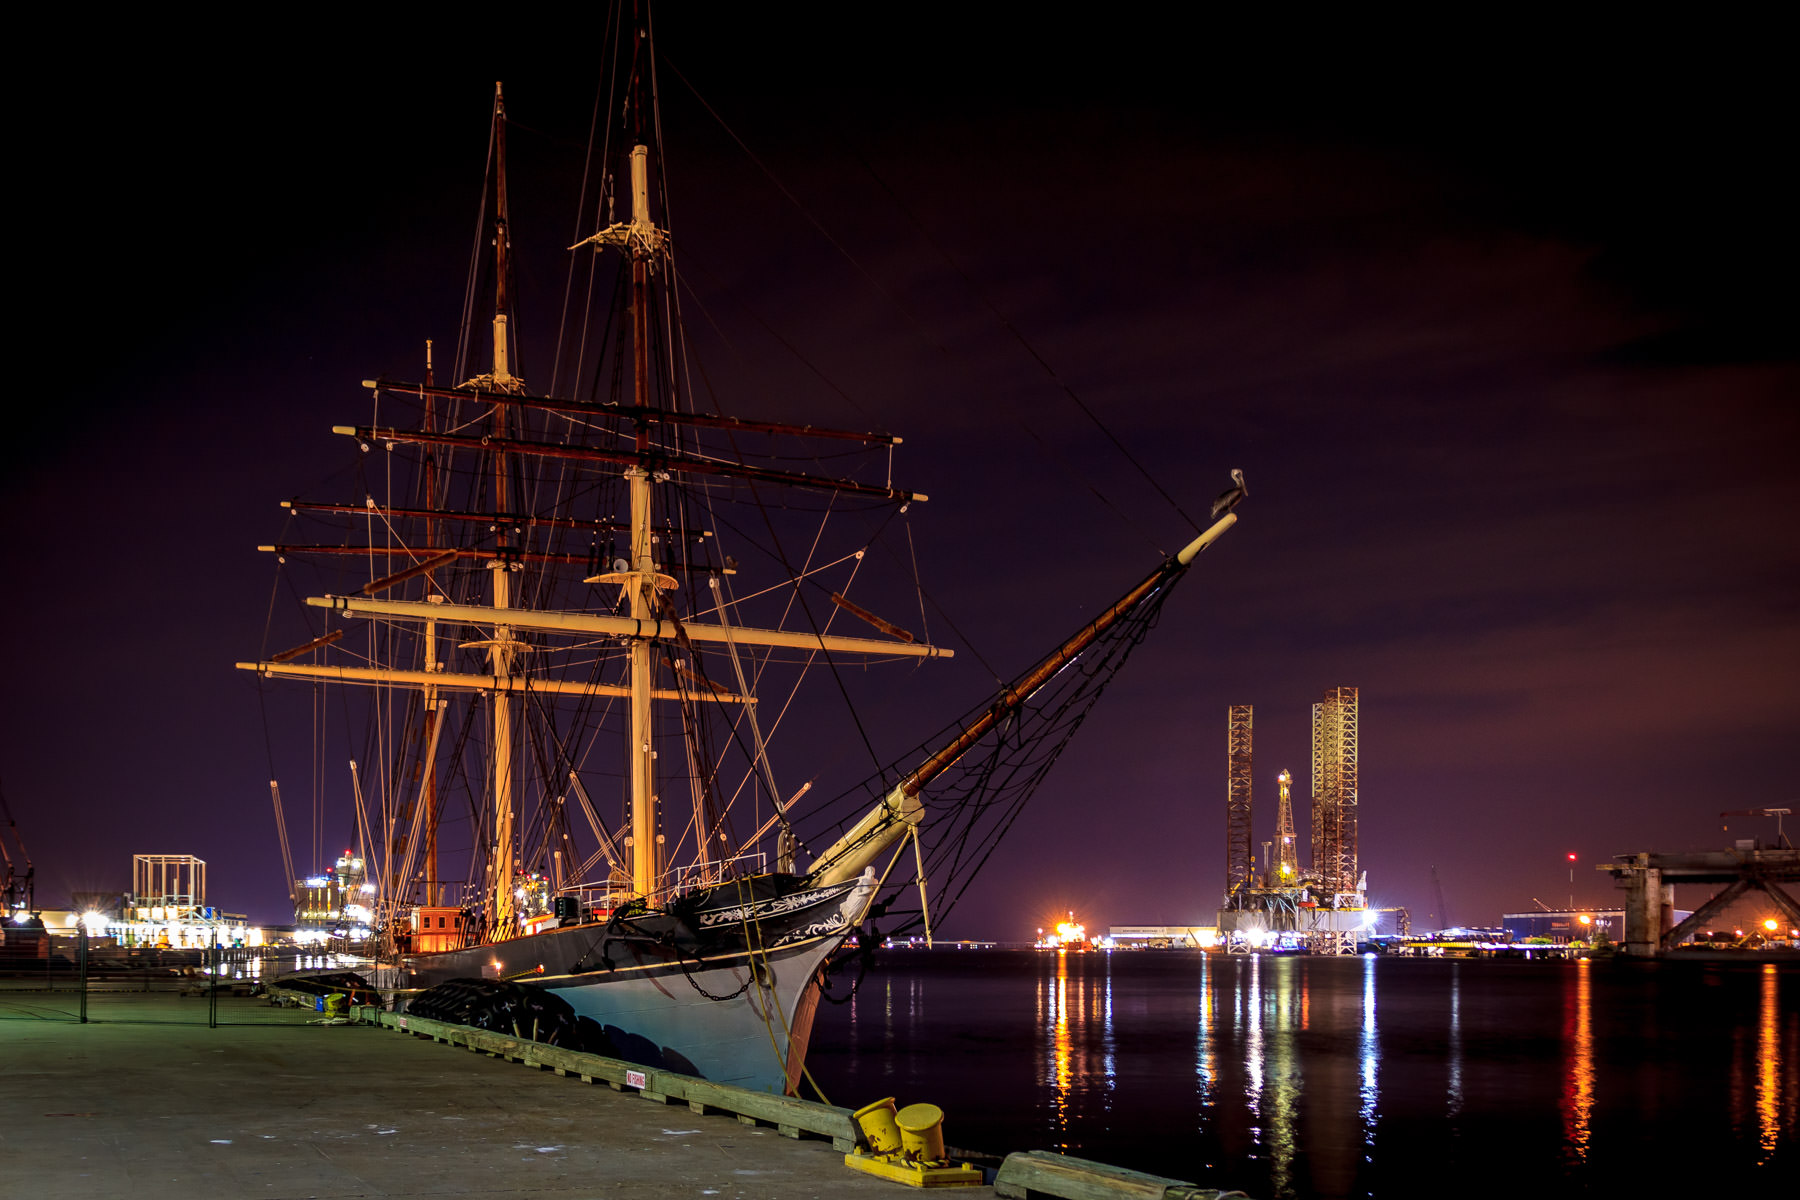 A night time shot of the Elissa, a tall ship launched in 1877 and now ported in Galveston, Texas.